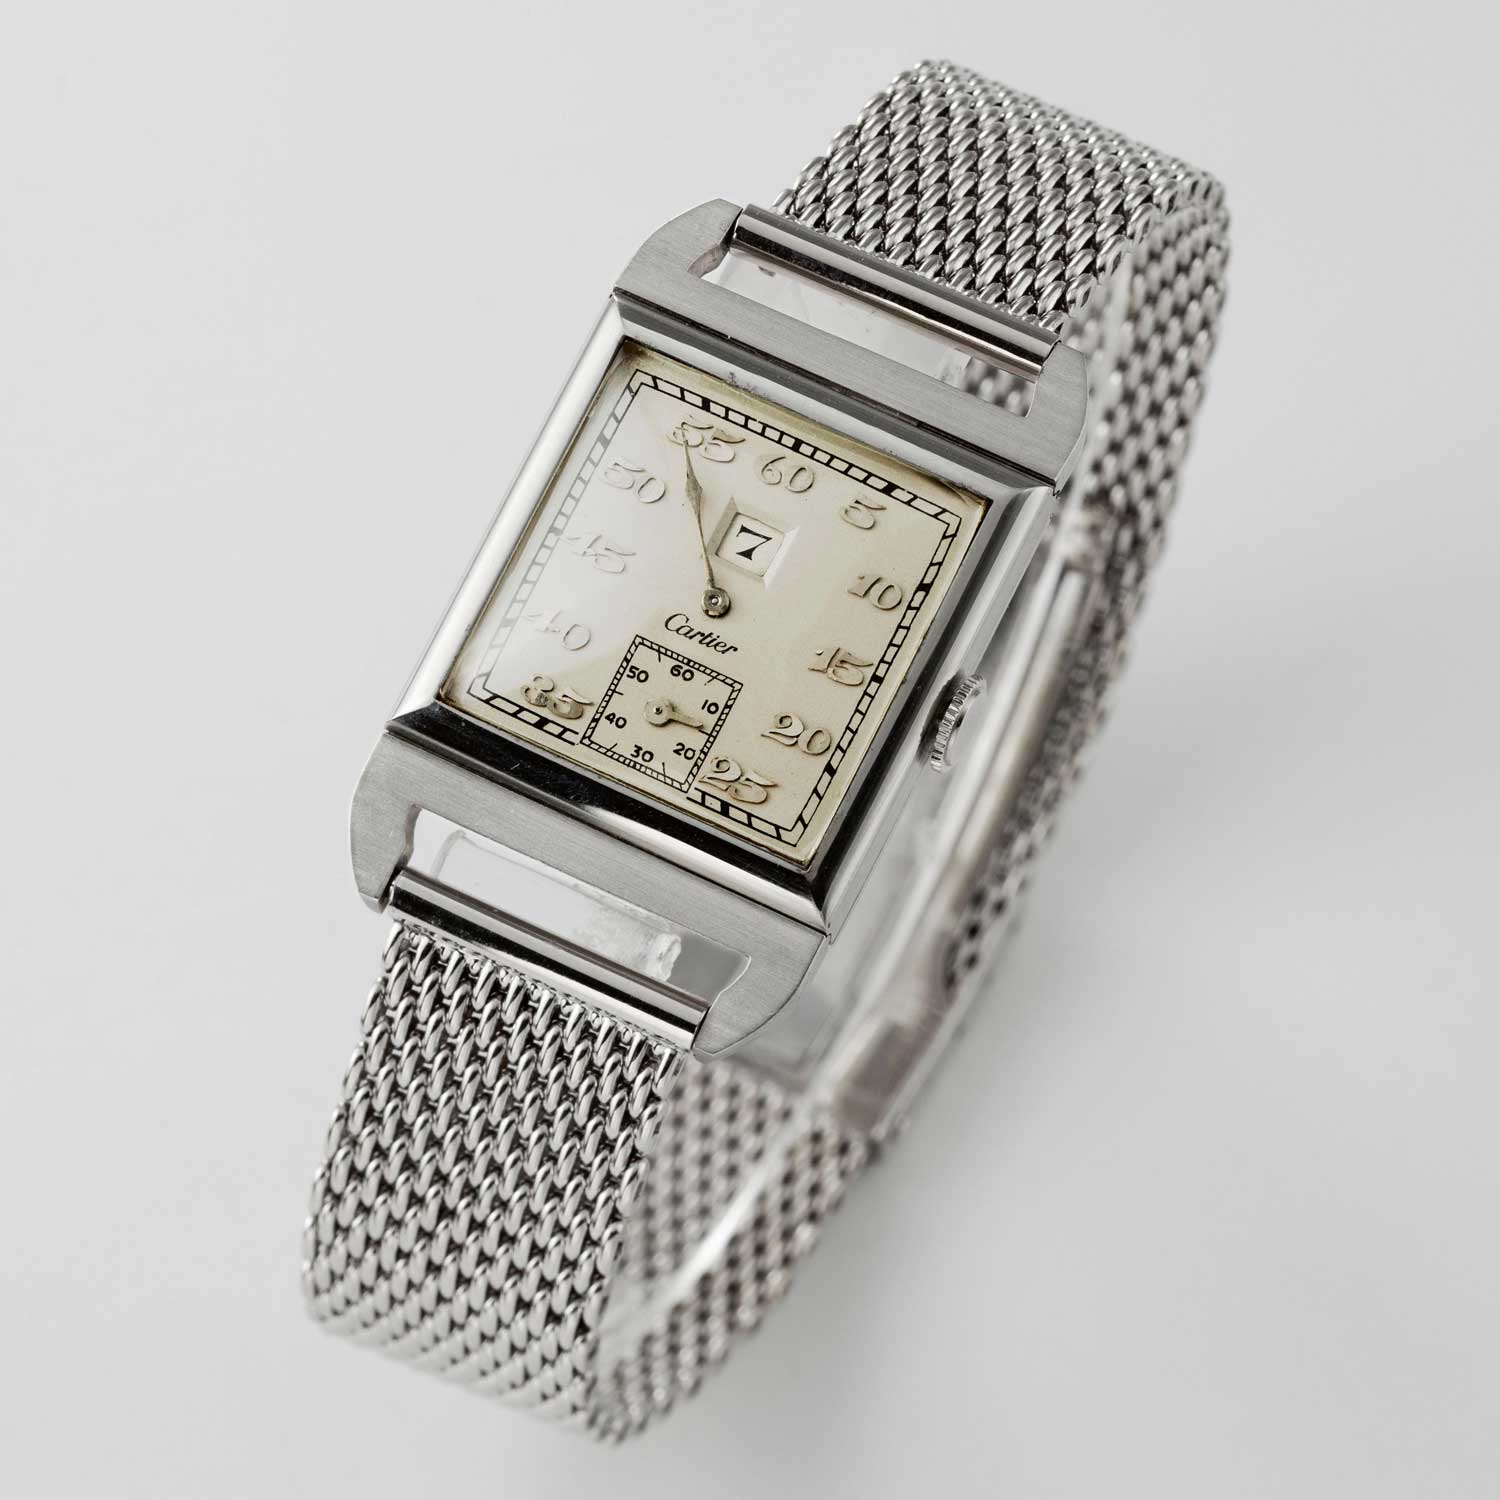 Jump hour display watch with an Audemars Piguet movement from 1929 (Image © Revolution)